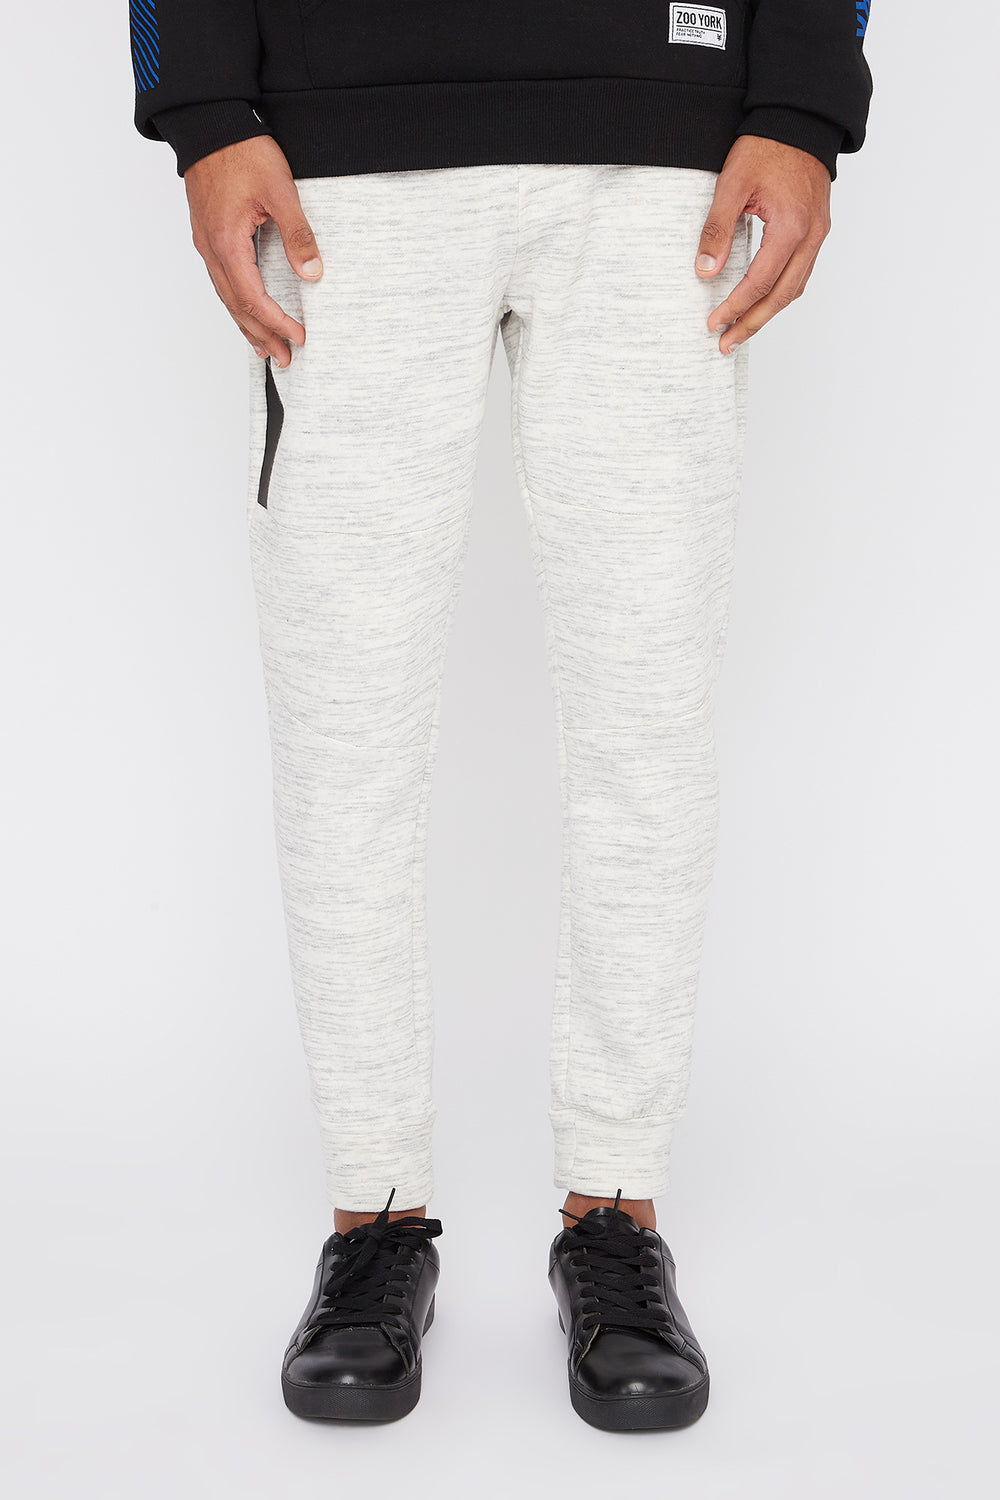 West49 Mens Zip Jogger Oatmeal